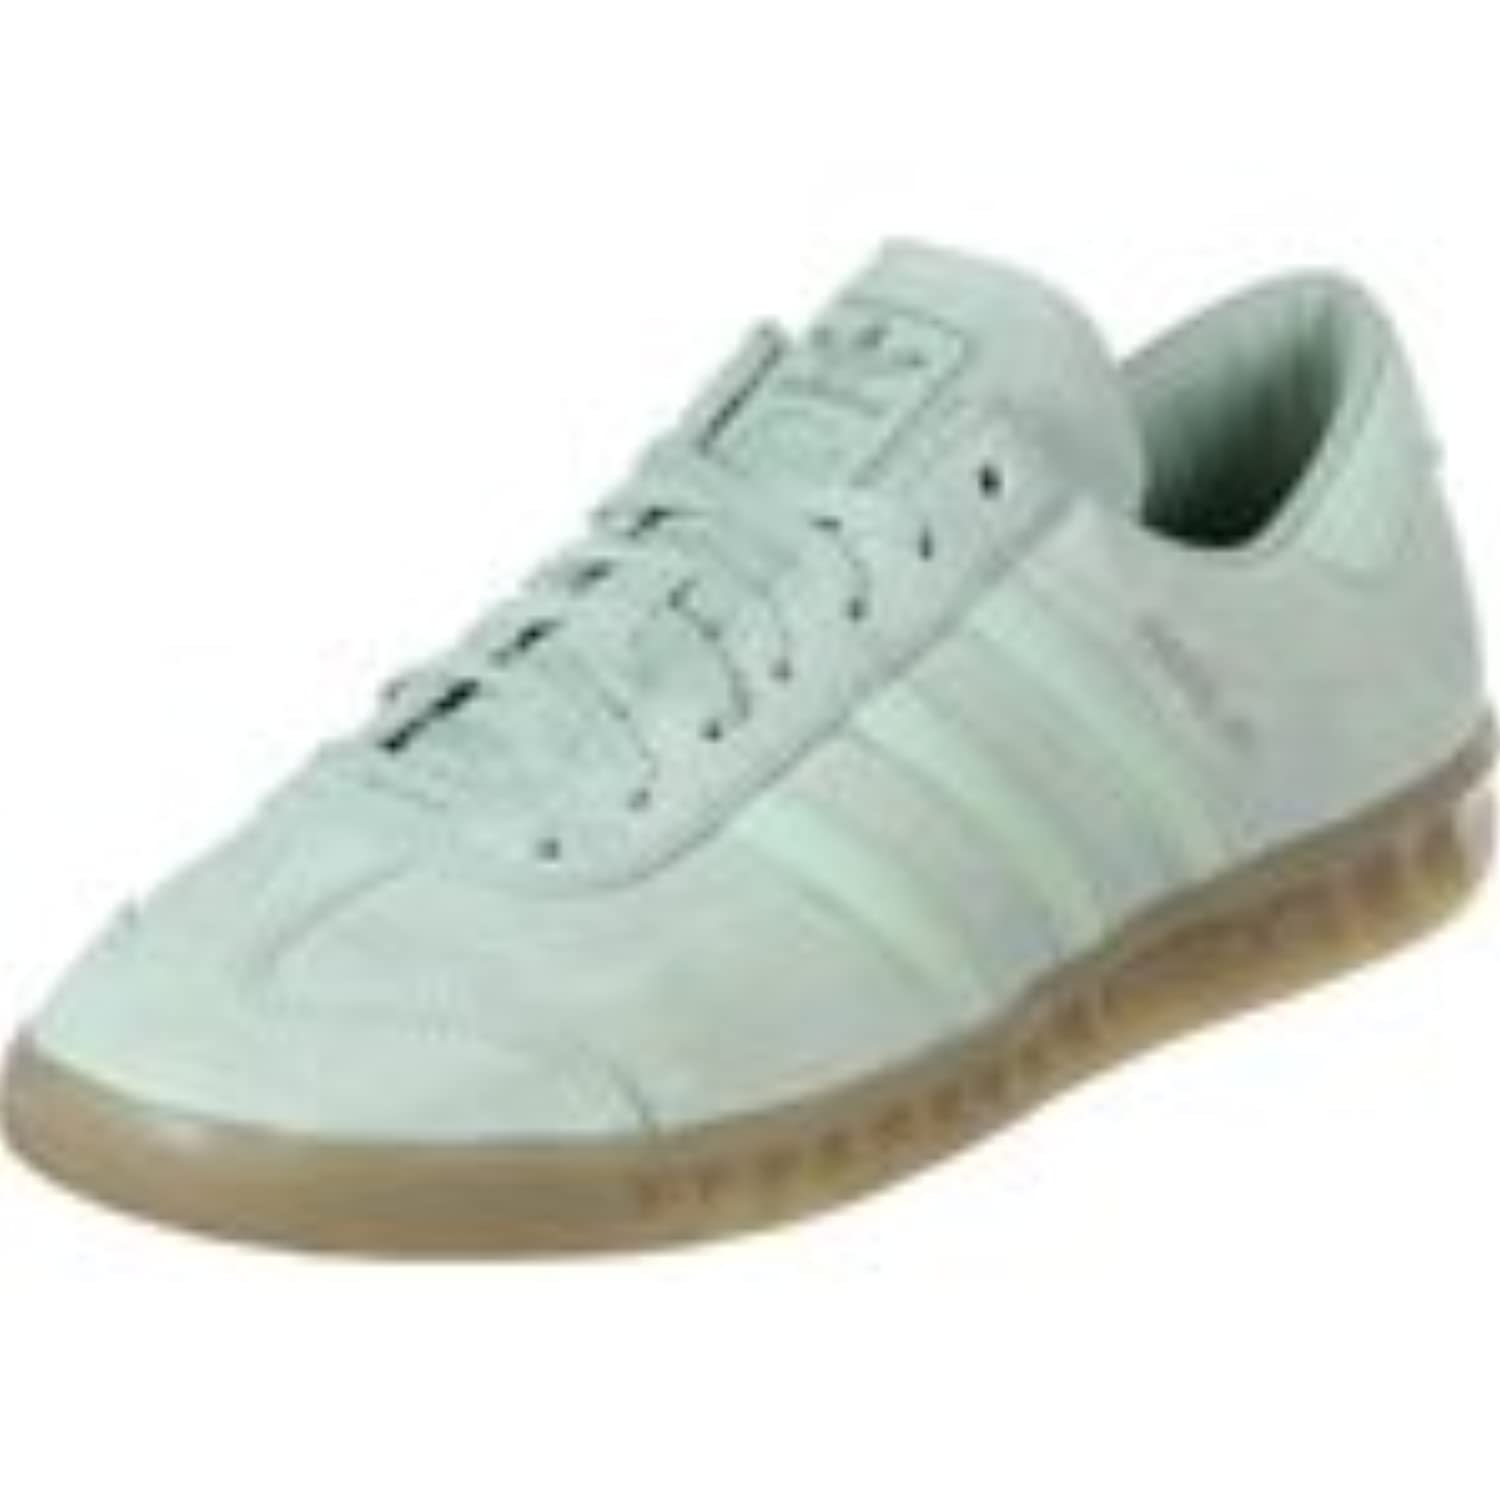 Adidas Hamburg Schuhe core black-blush blue-vintage white - 38 2/3